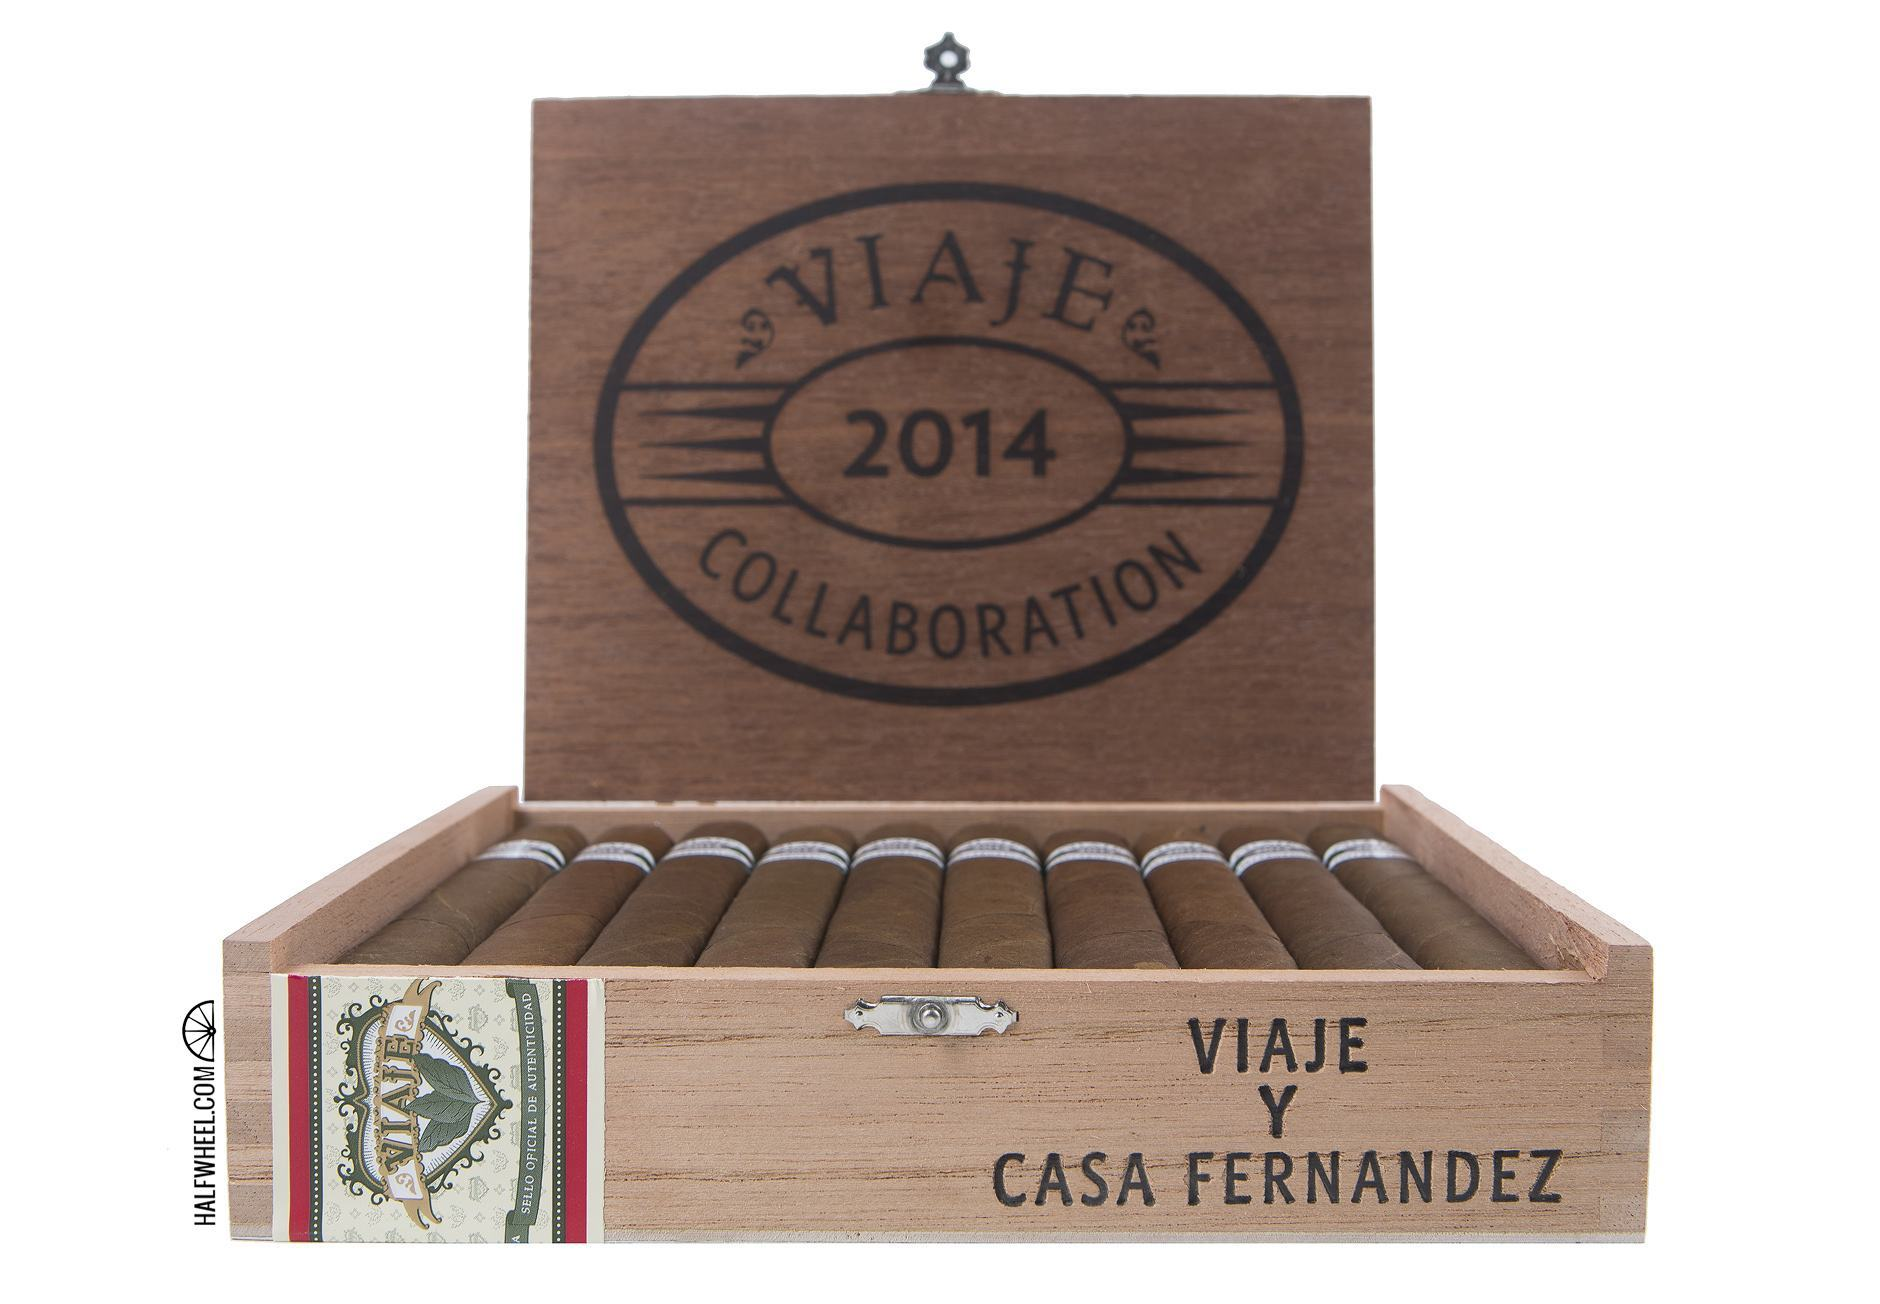 Viaje Collaboration 2014 Box 2